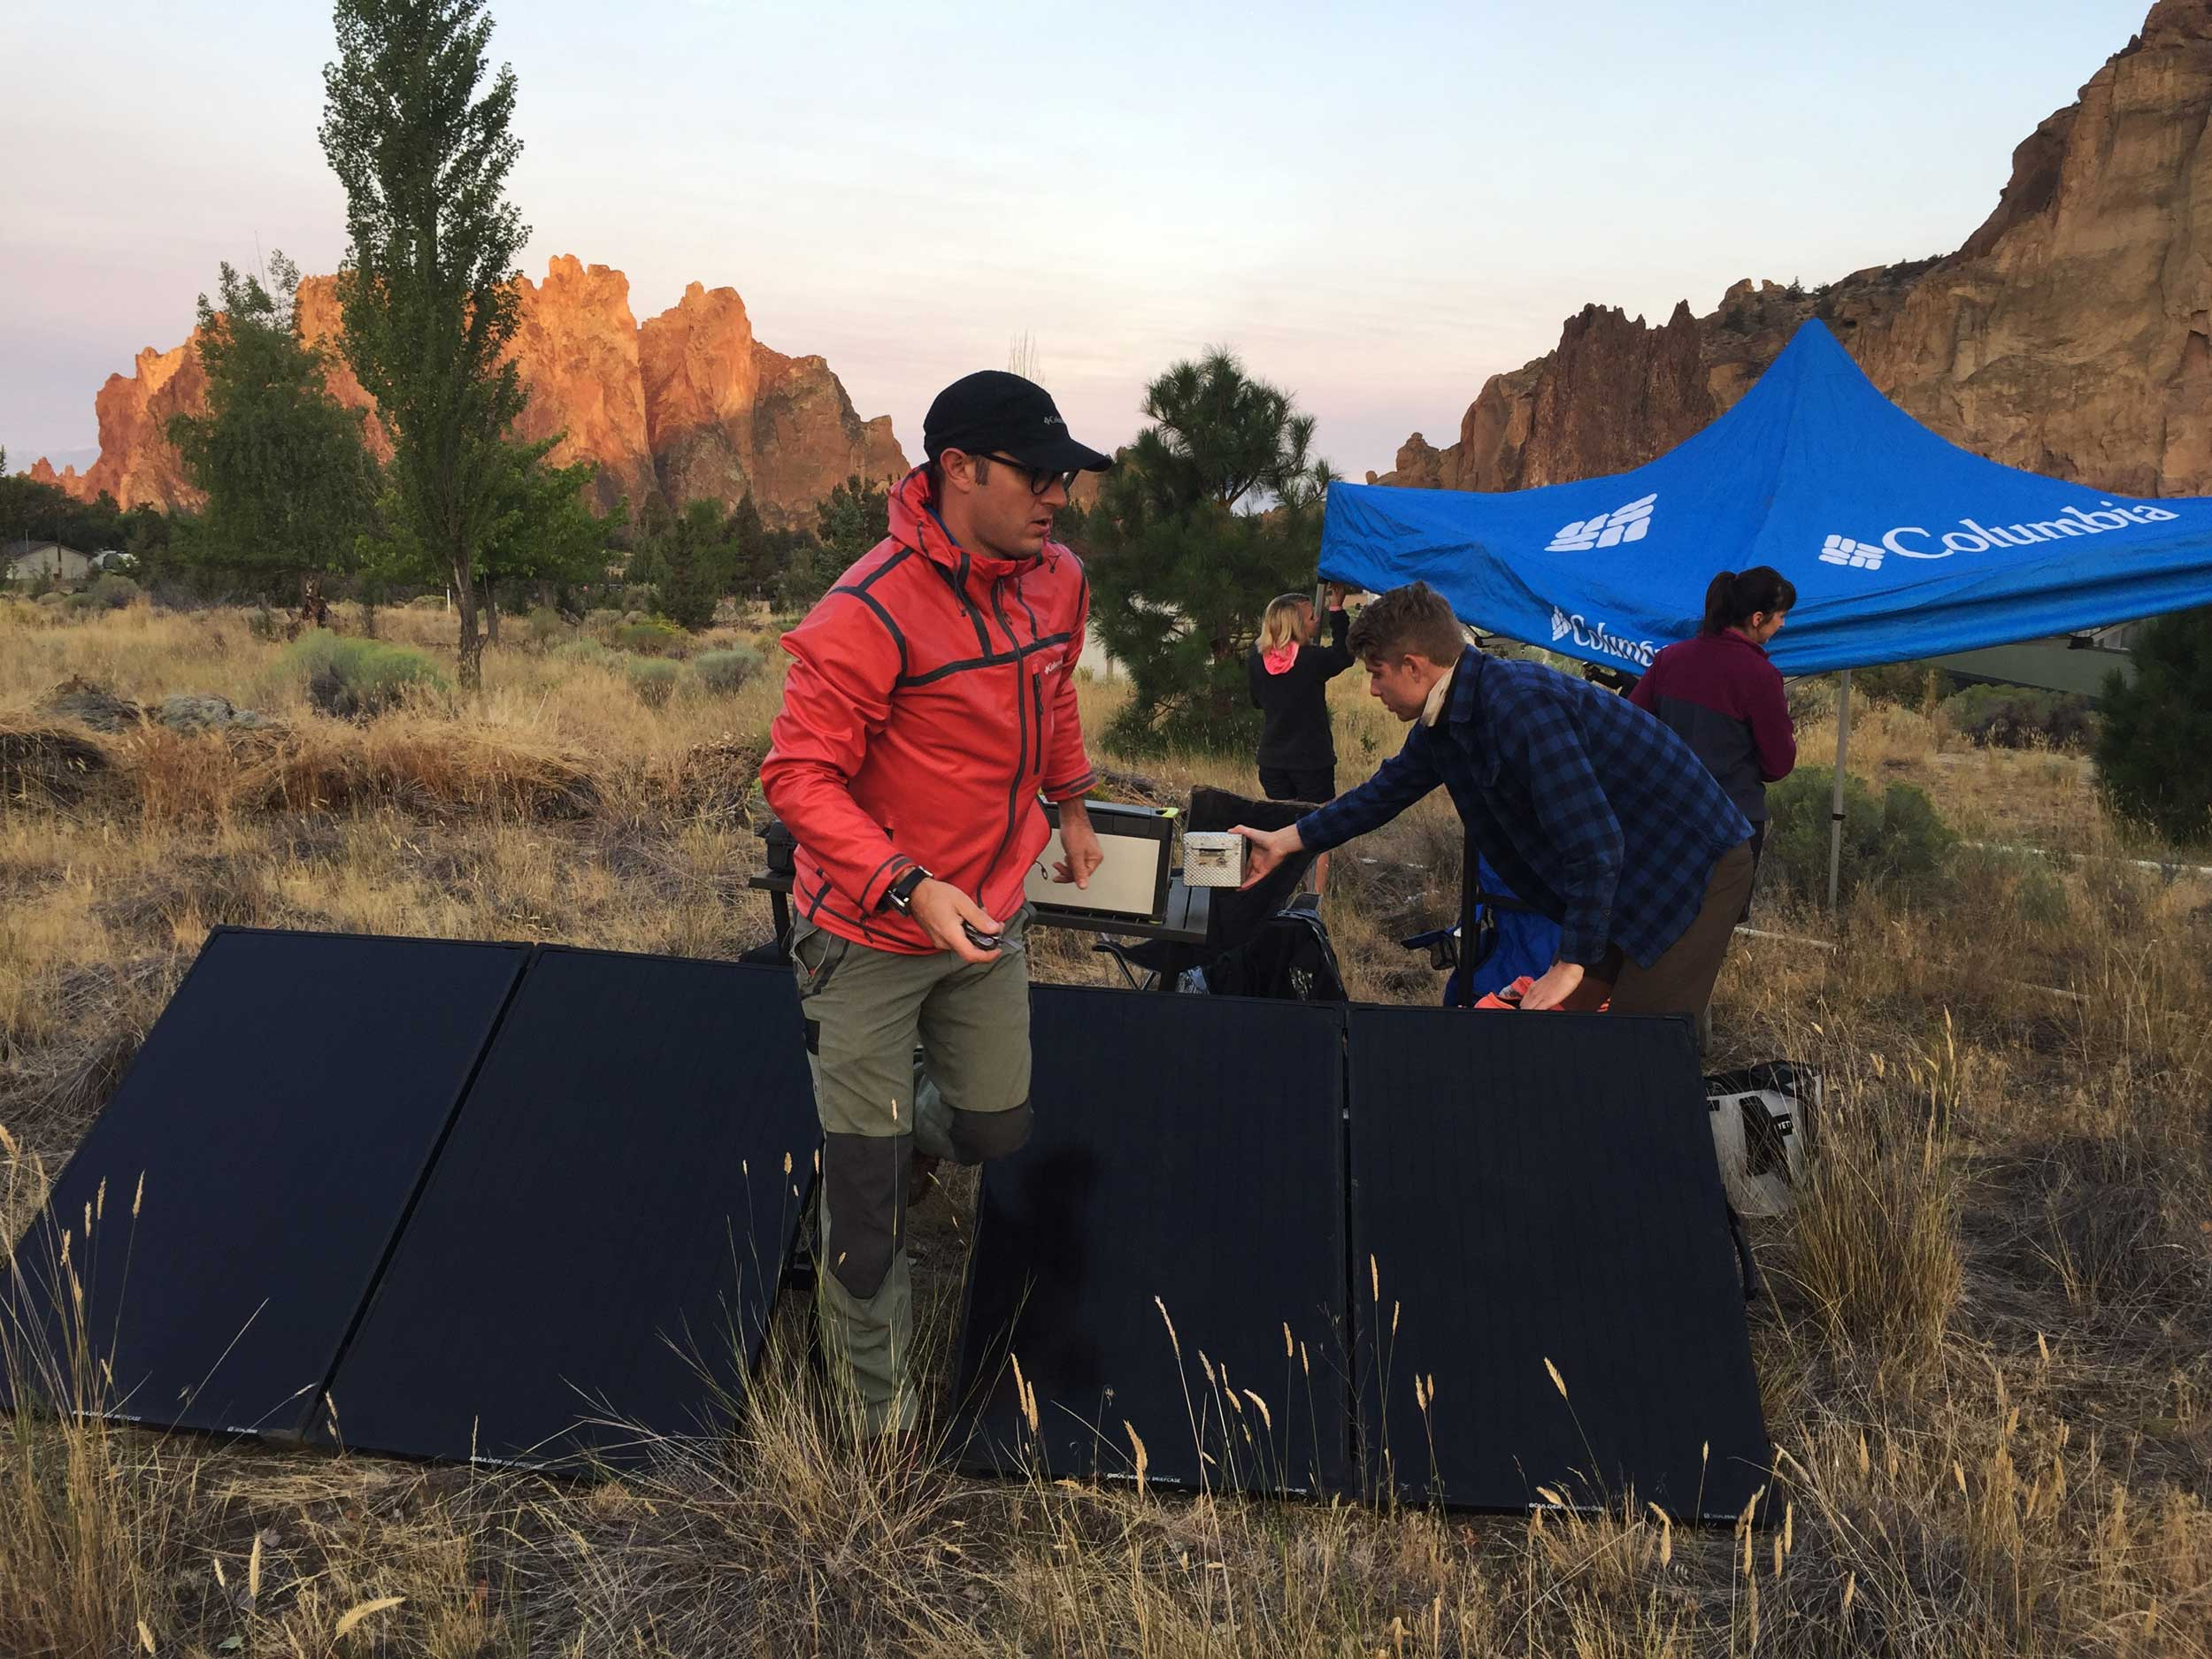 Columbia Sportswear sets up at the headquarters of SmithRock.com for a live broadcast of the Total Solar Eclipse at Smith Rock State Park